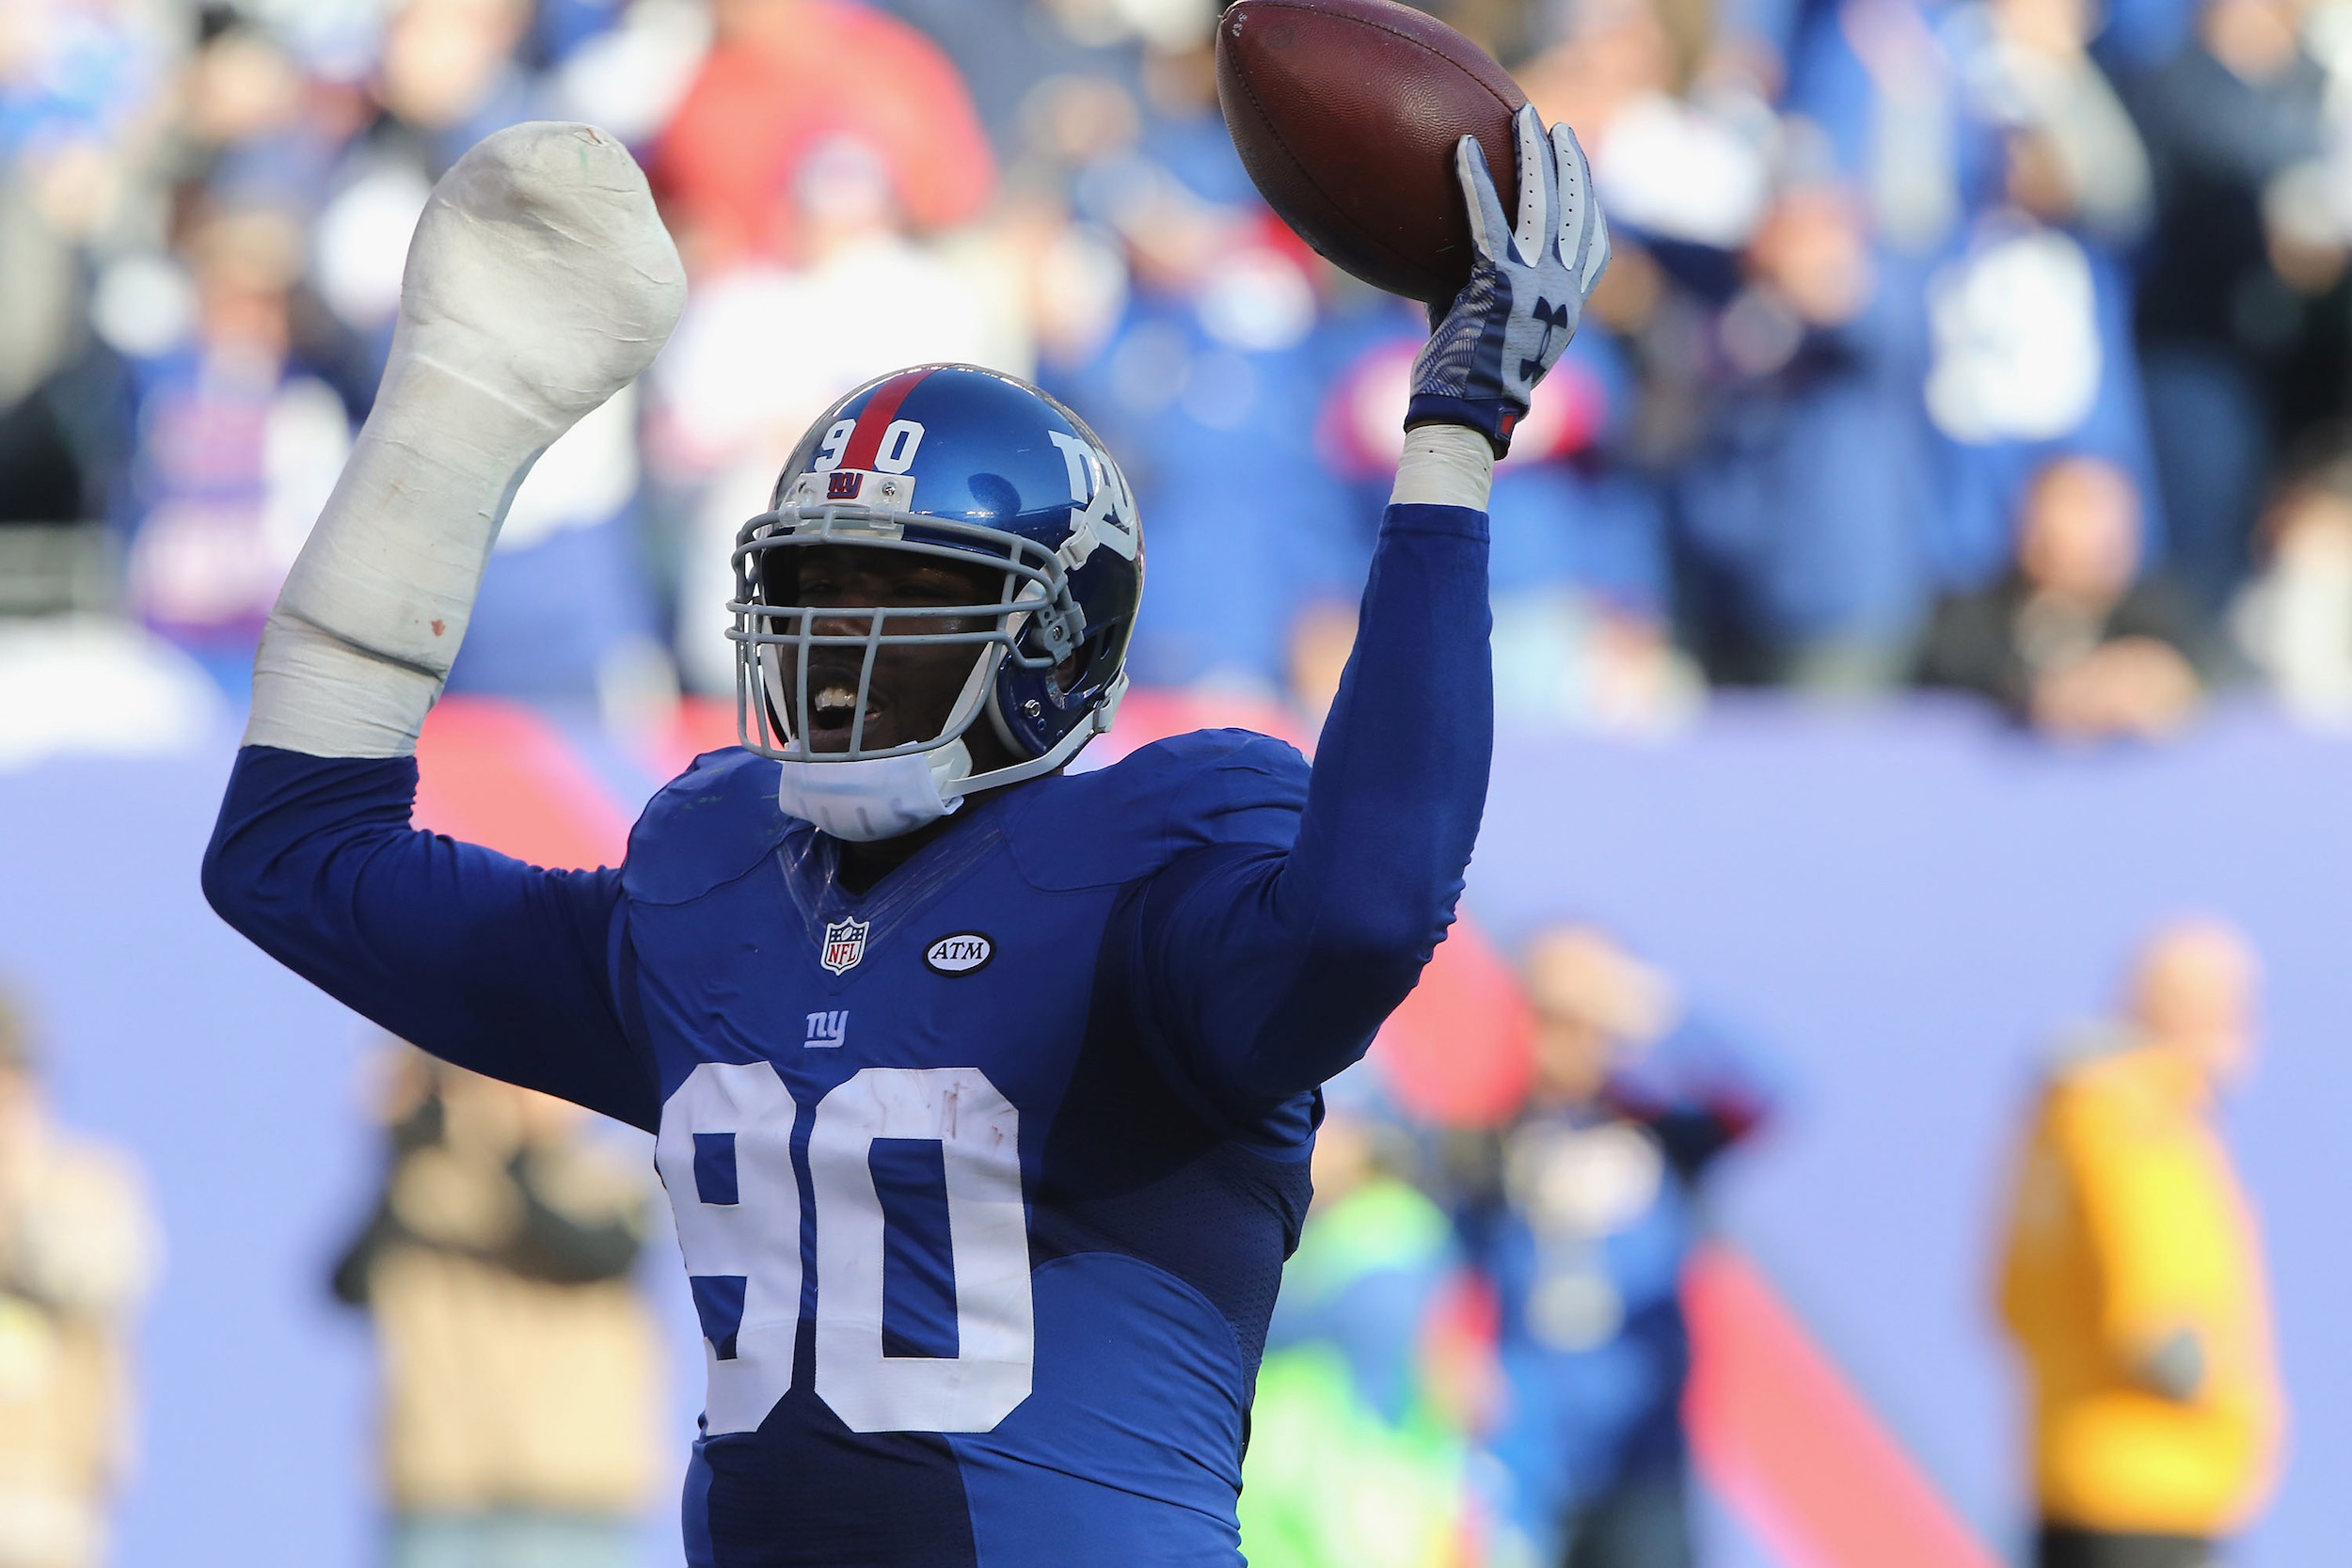 Jason Pierre-Paul suffered a serious hand injury setting off fireworks in 2015.